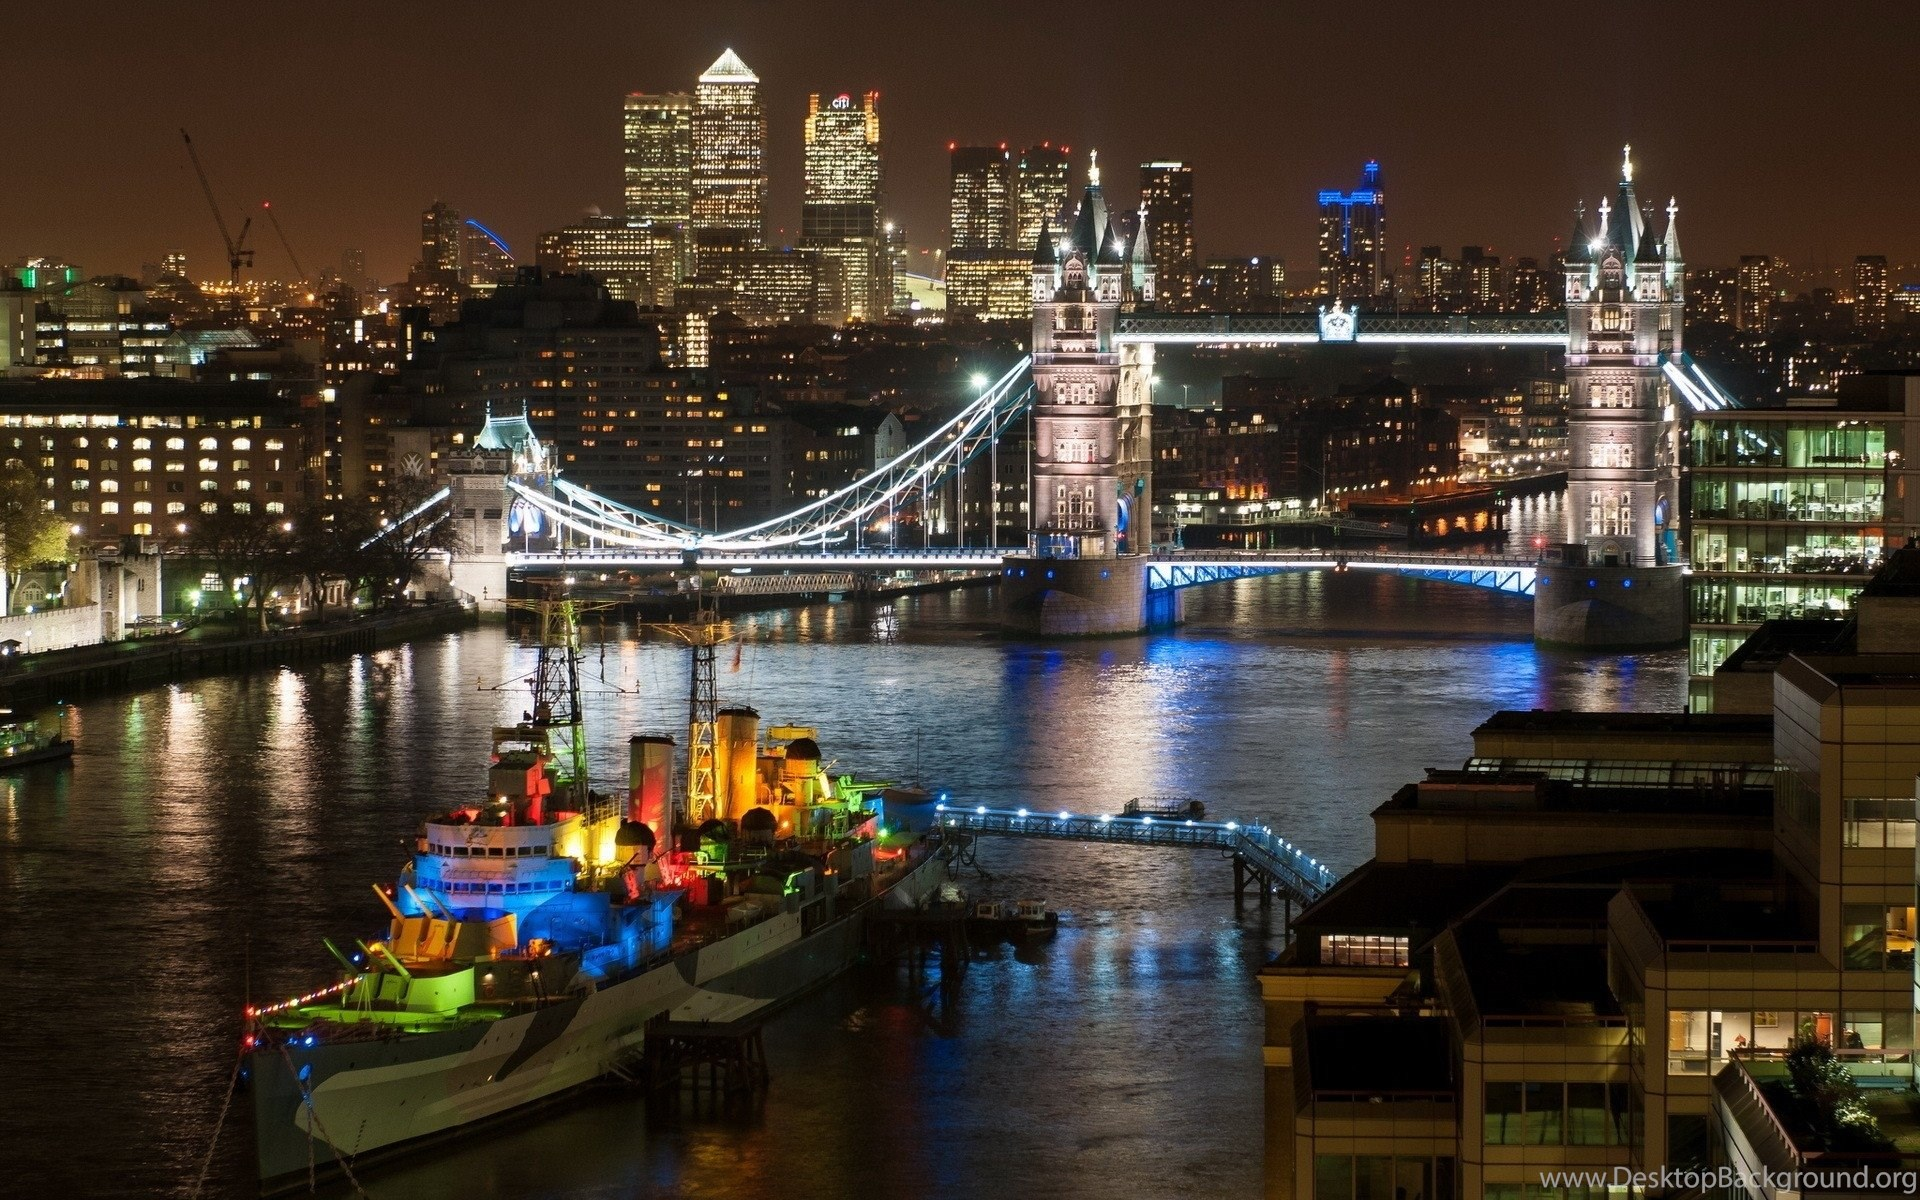 London Bridge At Night Hd Desktop Wallpapers Hd Desktop Wallpapers